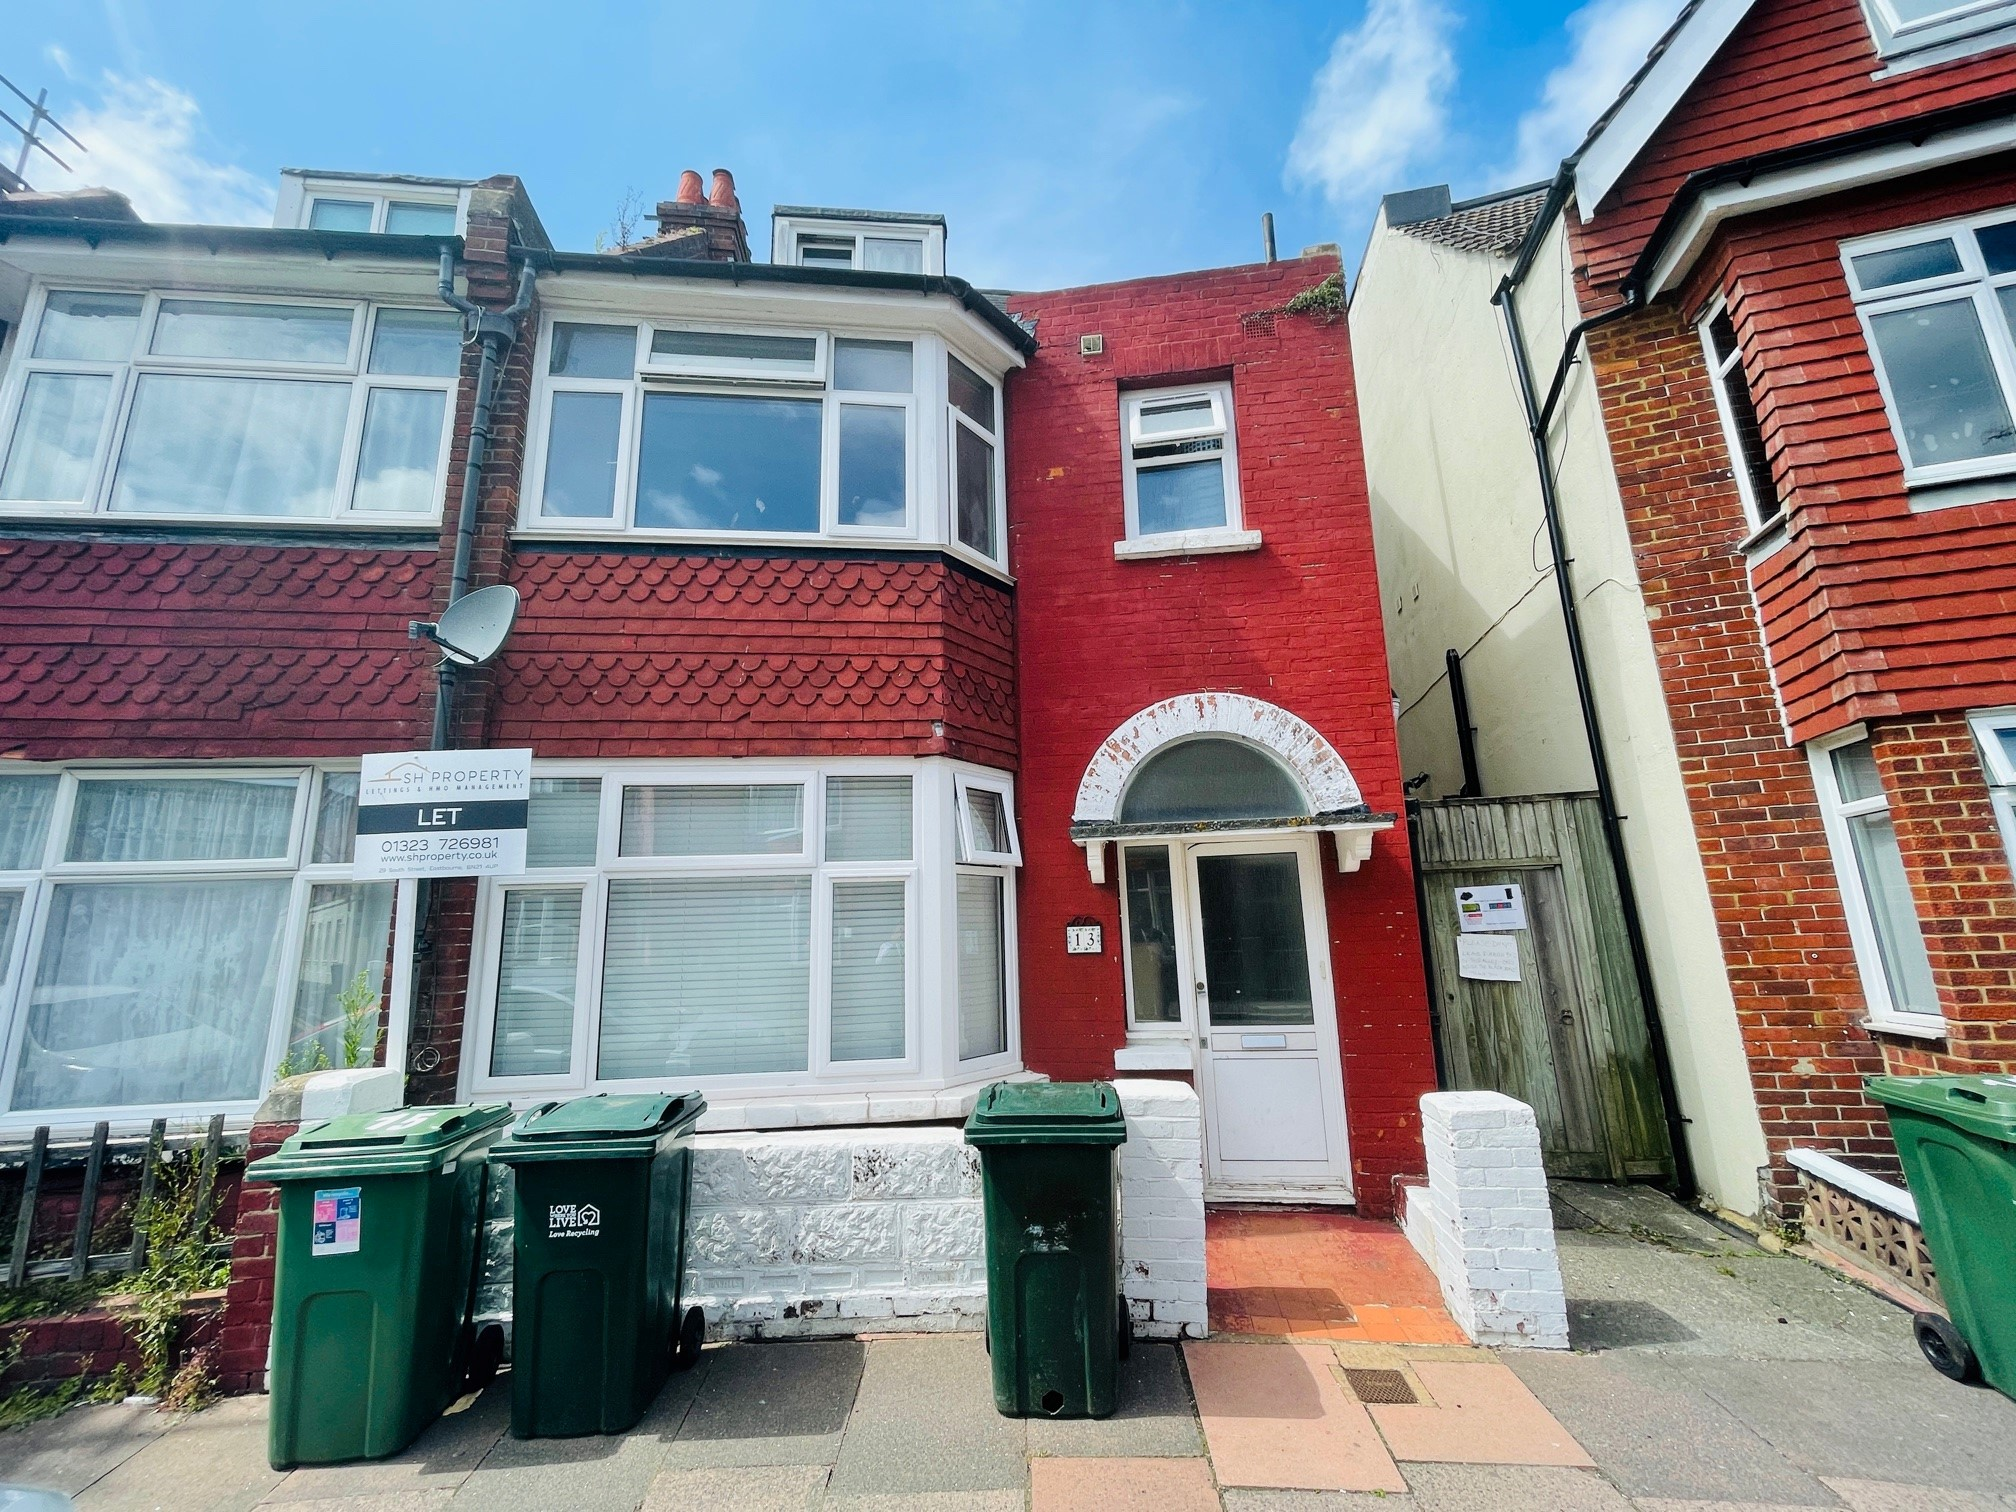 Willowfield Road, Eastbourne, East Sussex, BN22 8AL